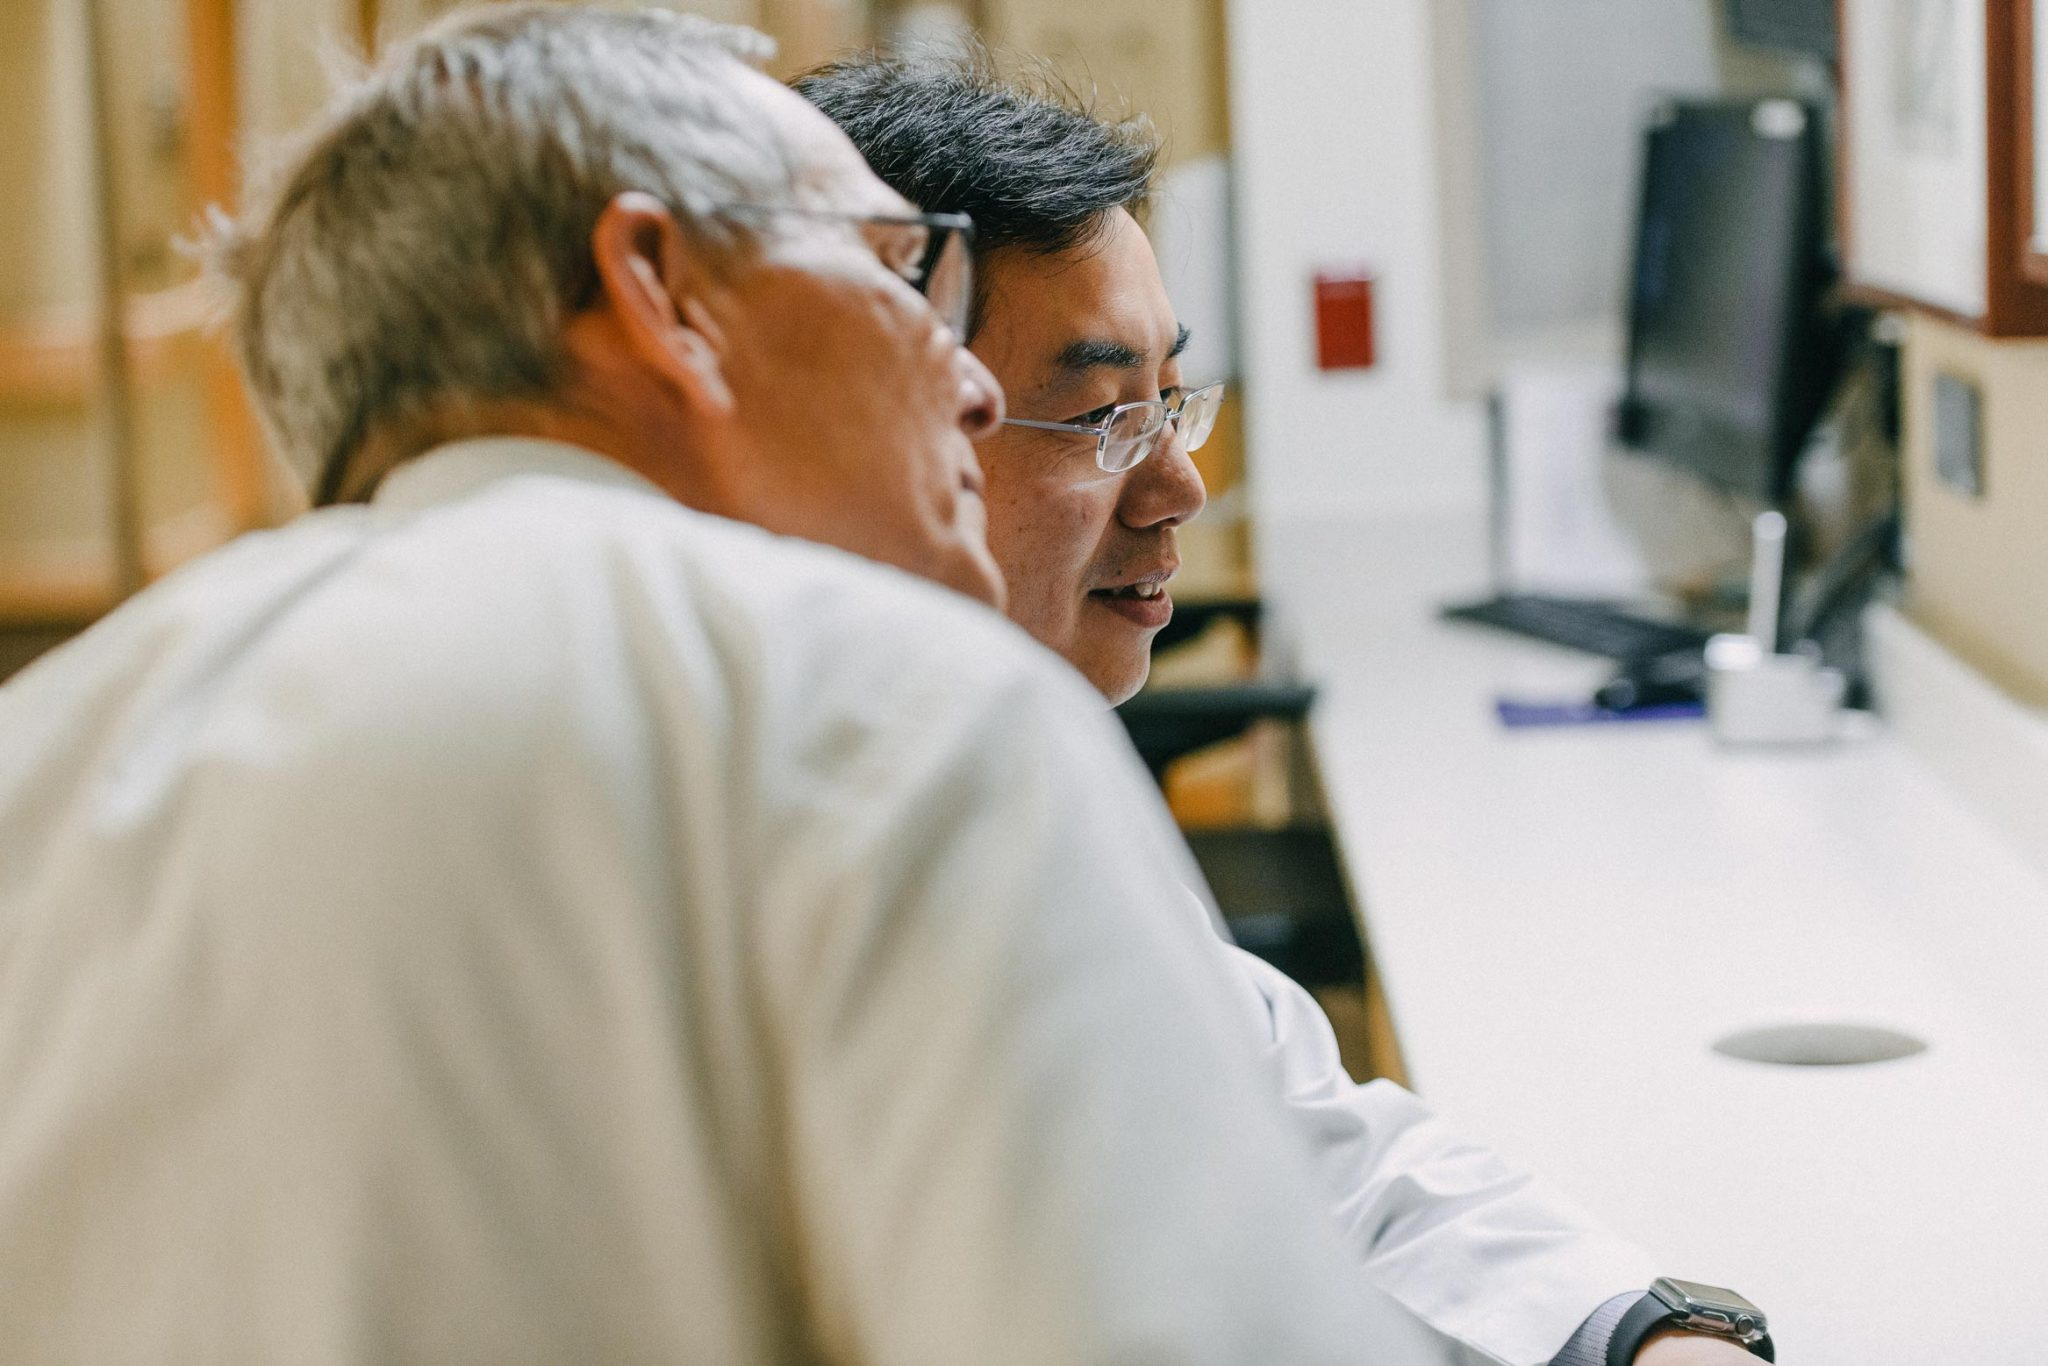 UK HealthCare oncologist, Dr. Peng Wang, and Dr. Charles Lutz discuss treatment options.